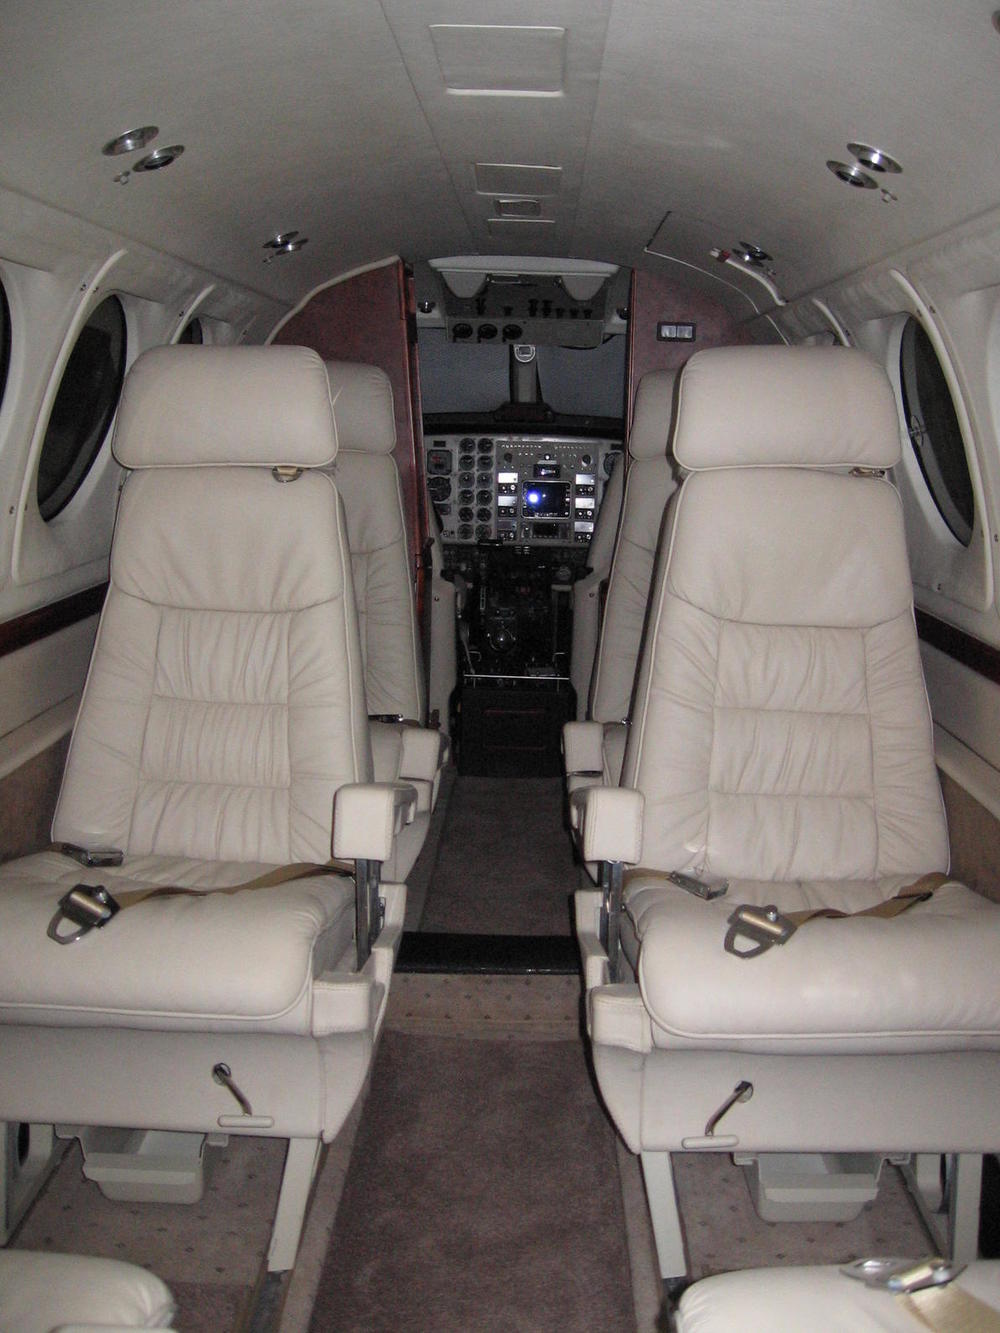 King Air B200 (BE20)